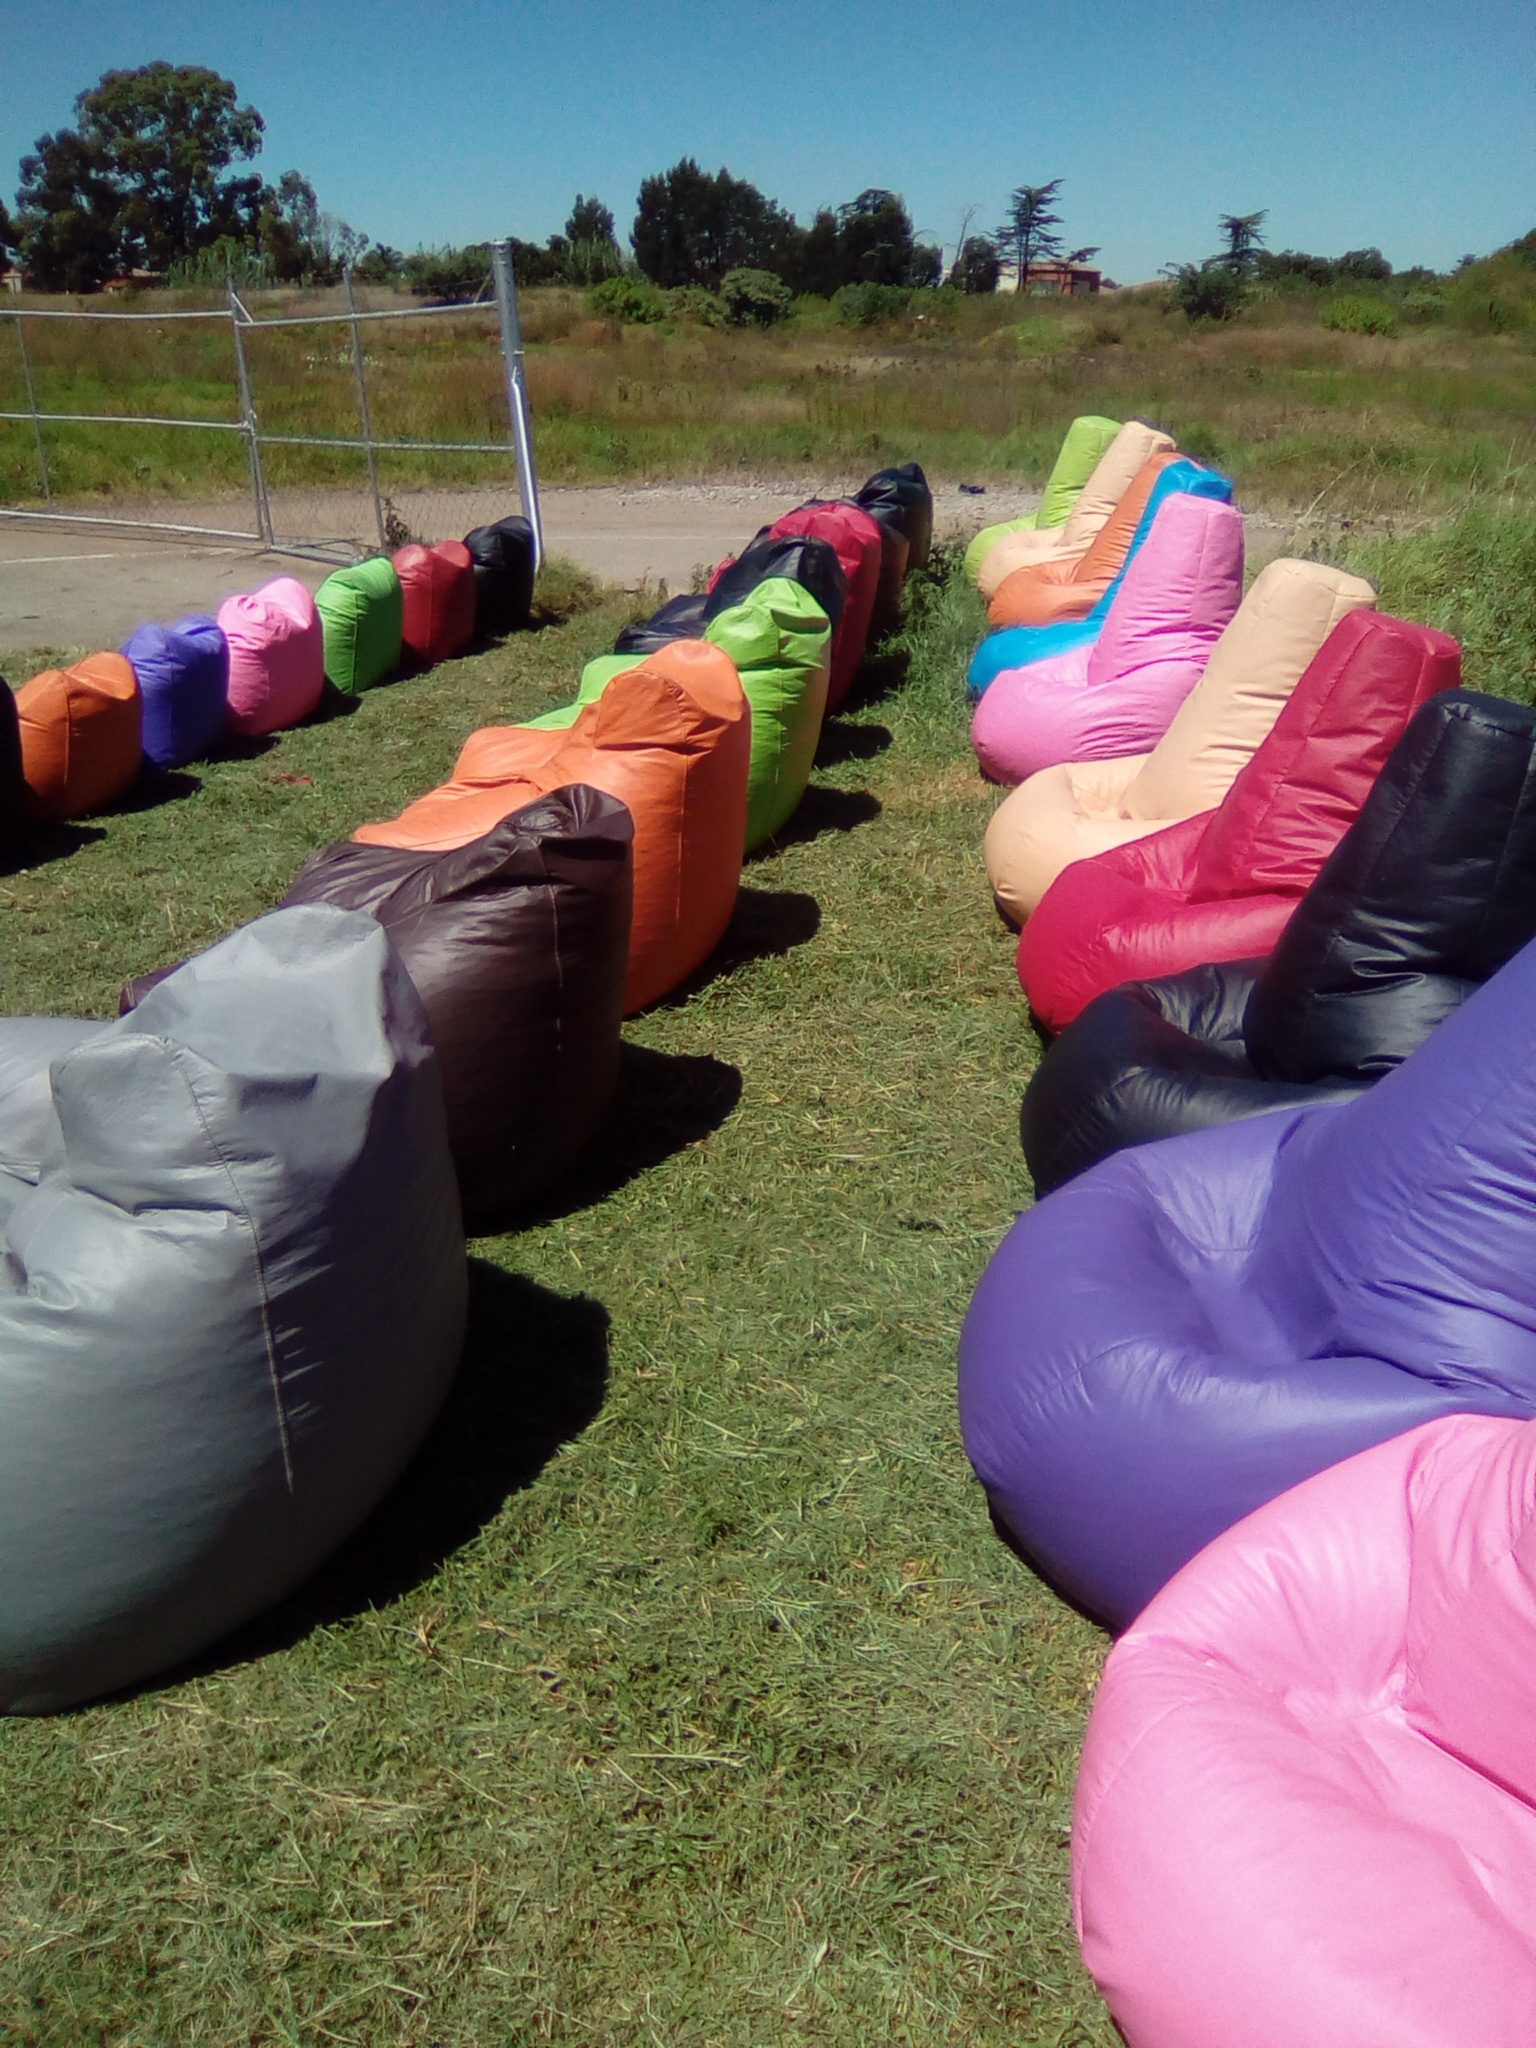 Swell Bean Bags Hire Junk Mail Cjindustries Chair Design For Home Cjindustriesco